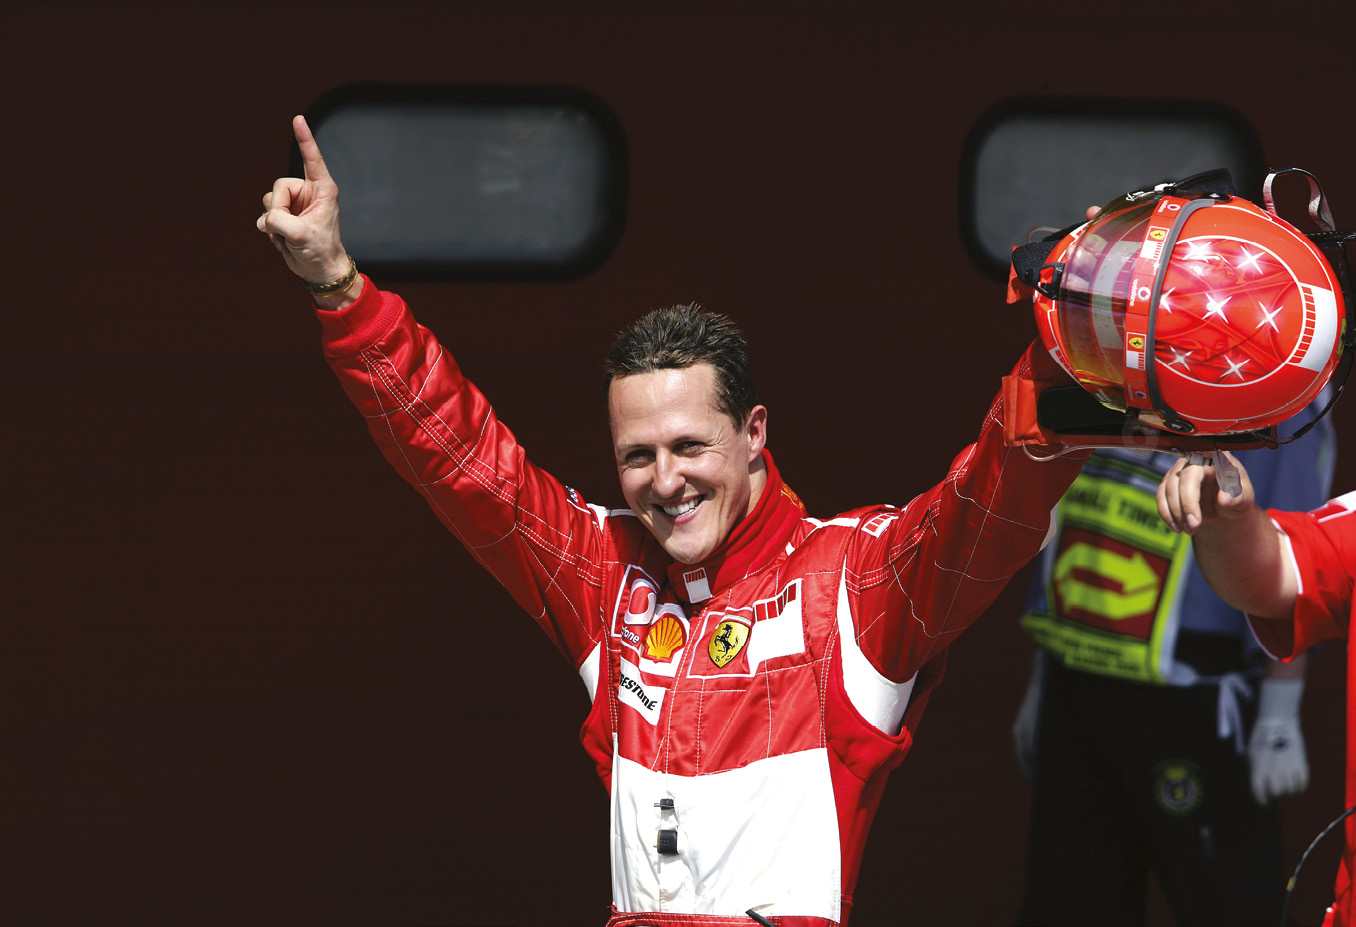 Schumacher's achievements have yet to be rivalled in Formula 1. His seventh world title came with Ferrari in 2004